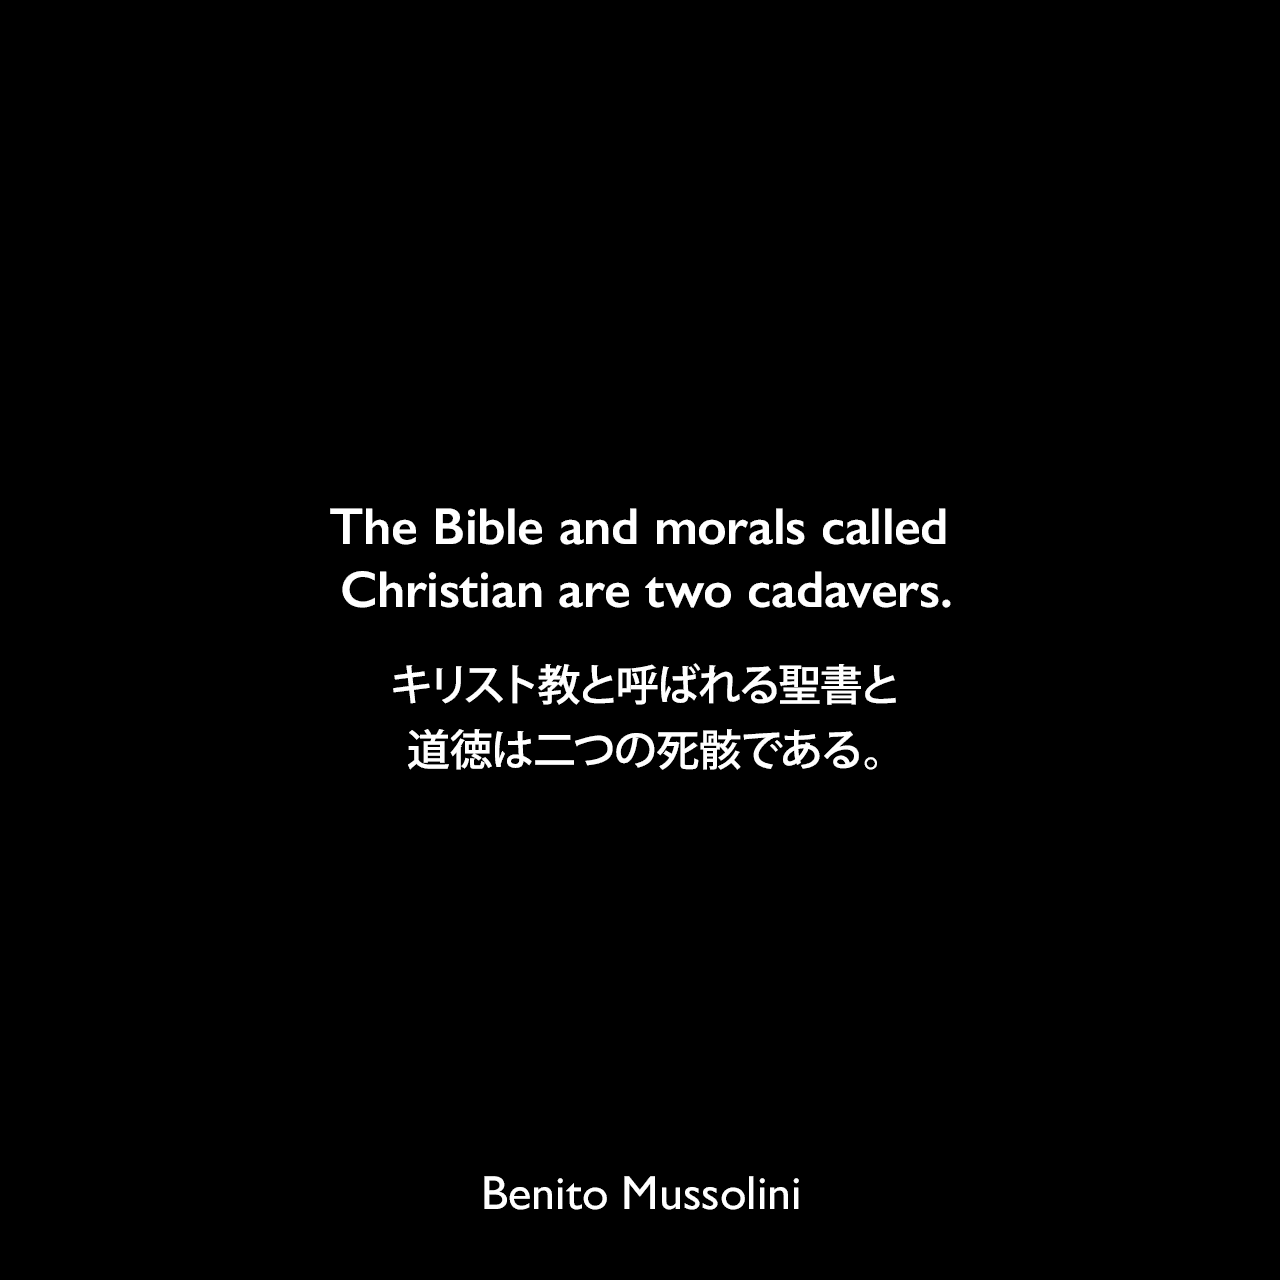 The Bible and morals called Christian are two cadavers.キリスト教と呼ばれる聖書と道徳は二つの死骸である。- ムッソリーニによる本「God Does Not Exist.」(1904年)よりBenito Mussolini